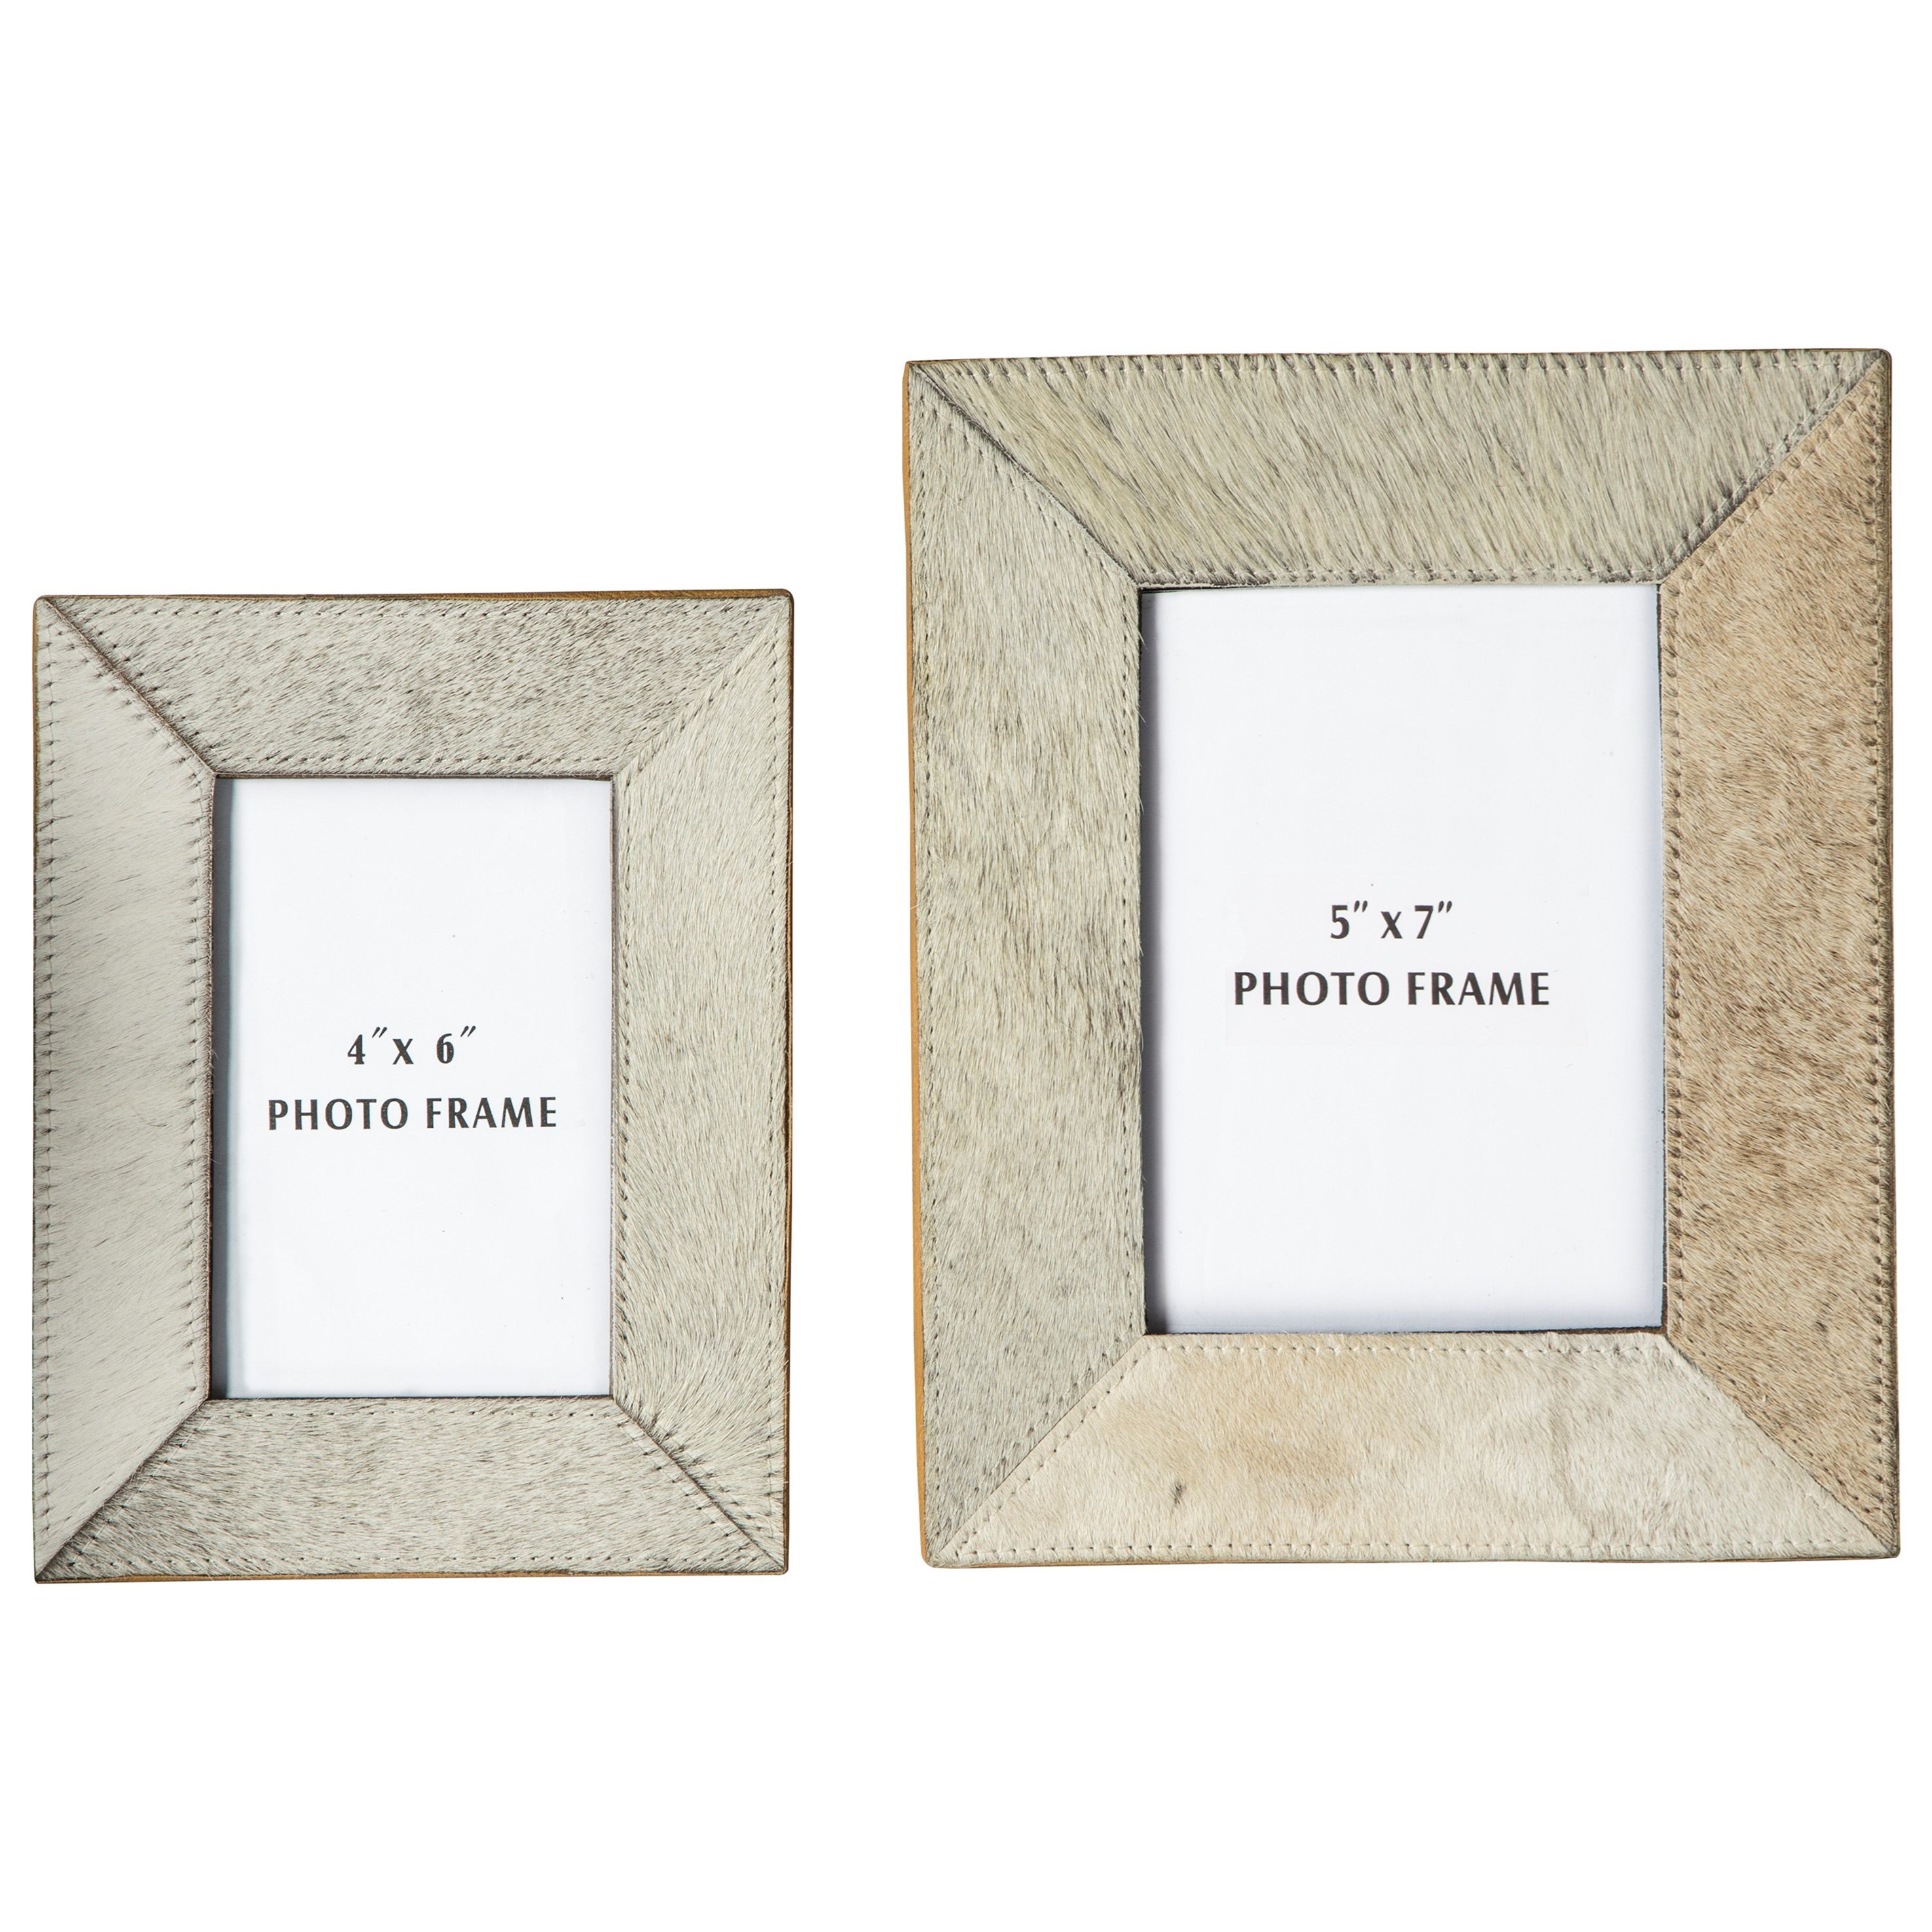 Signature Design by Ashley Accents Odeda Beige Photo Frame (Set of 2) - Item Number: A2000232F